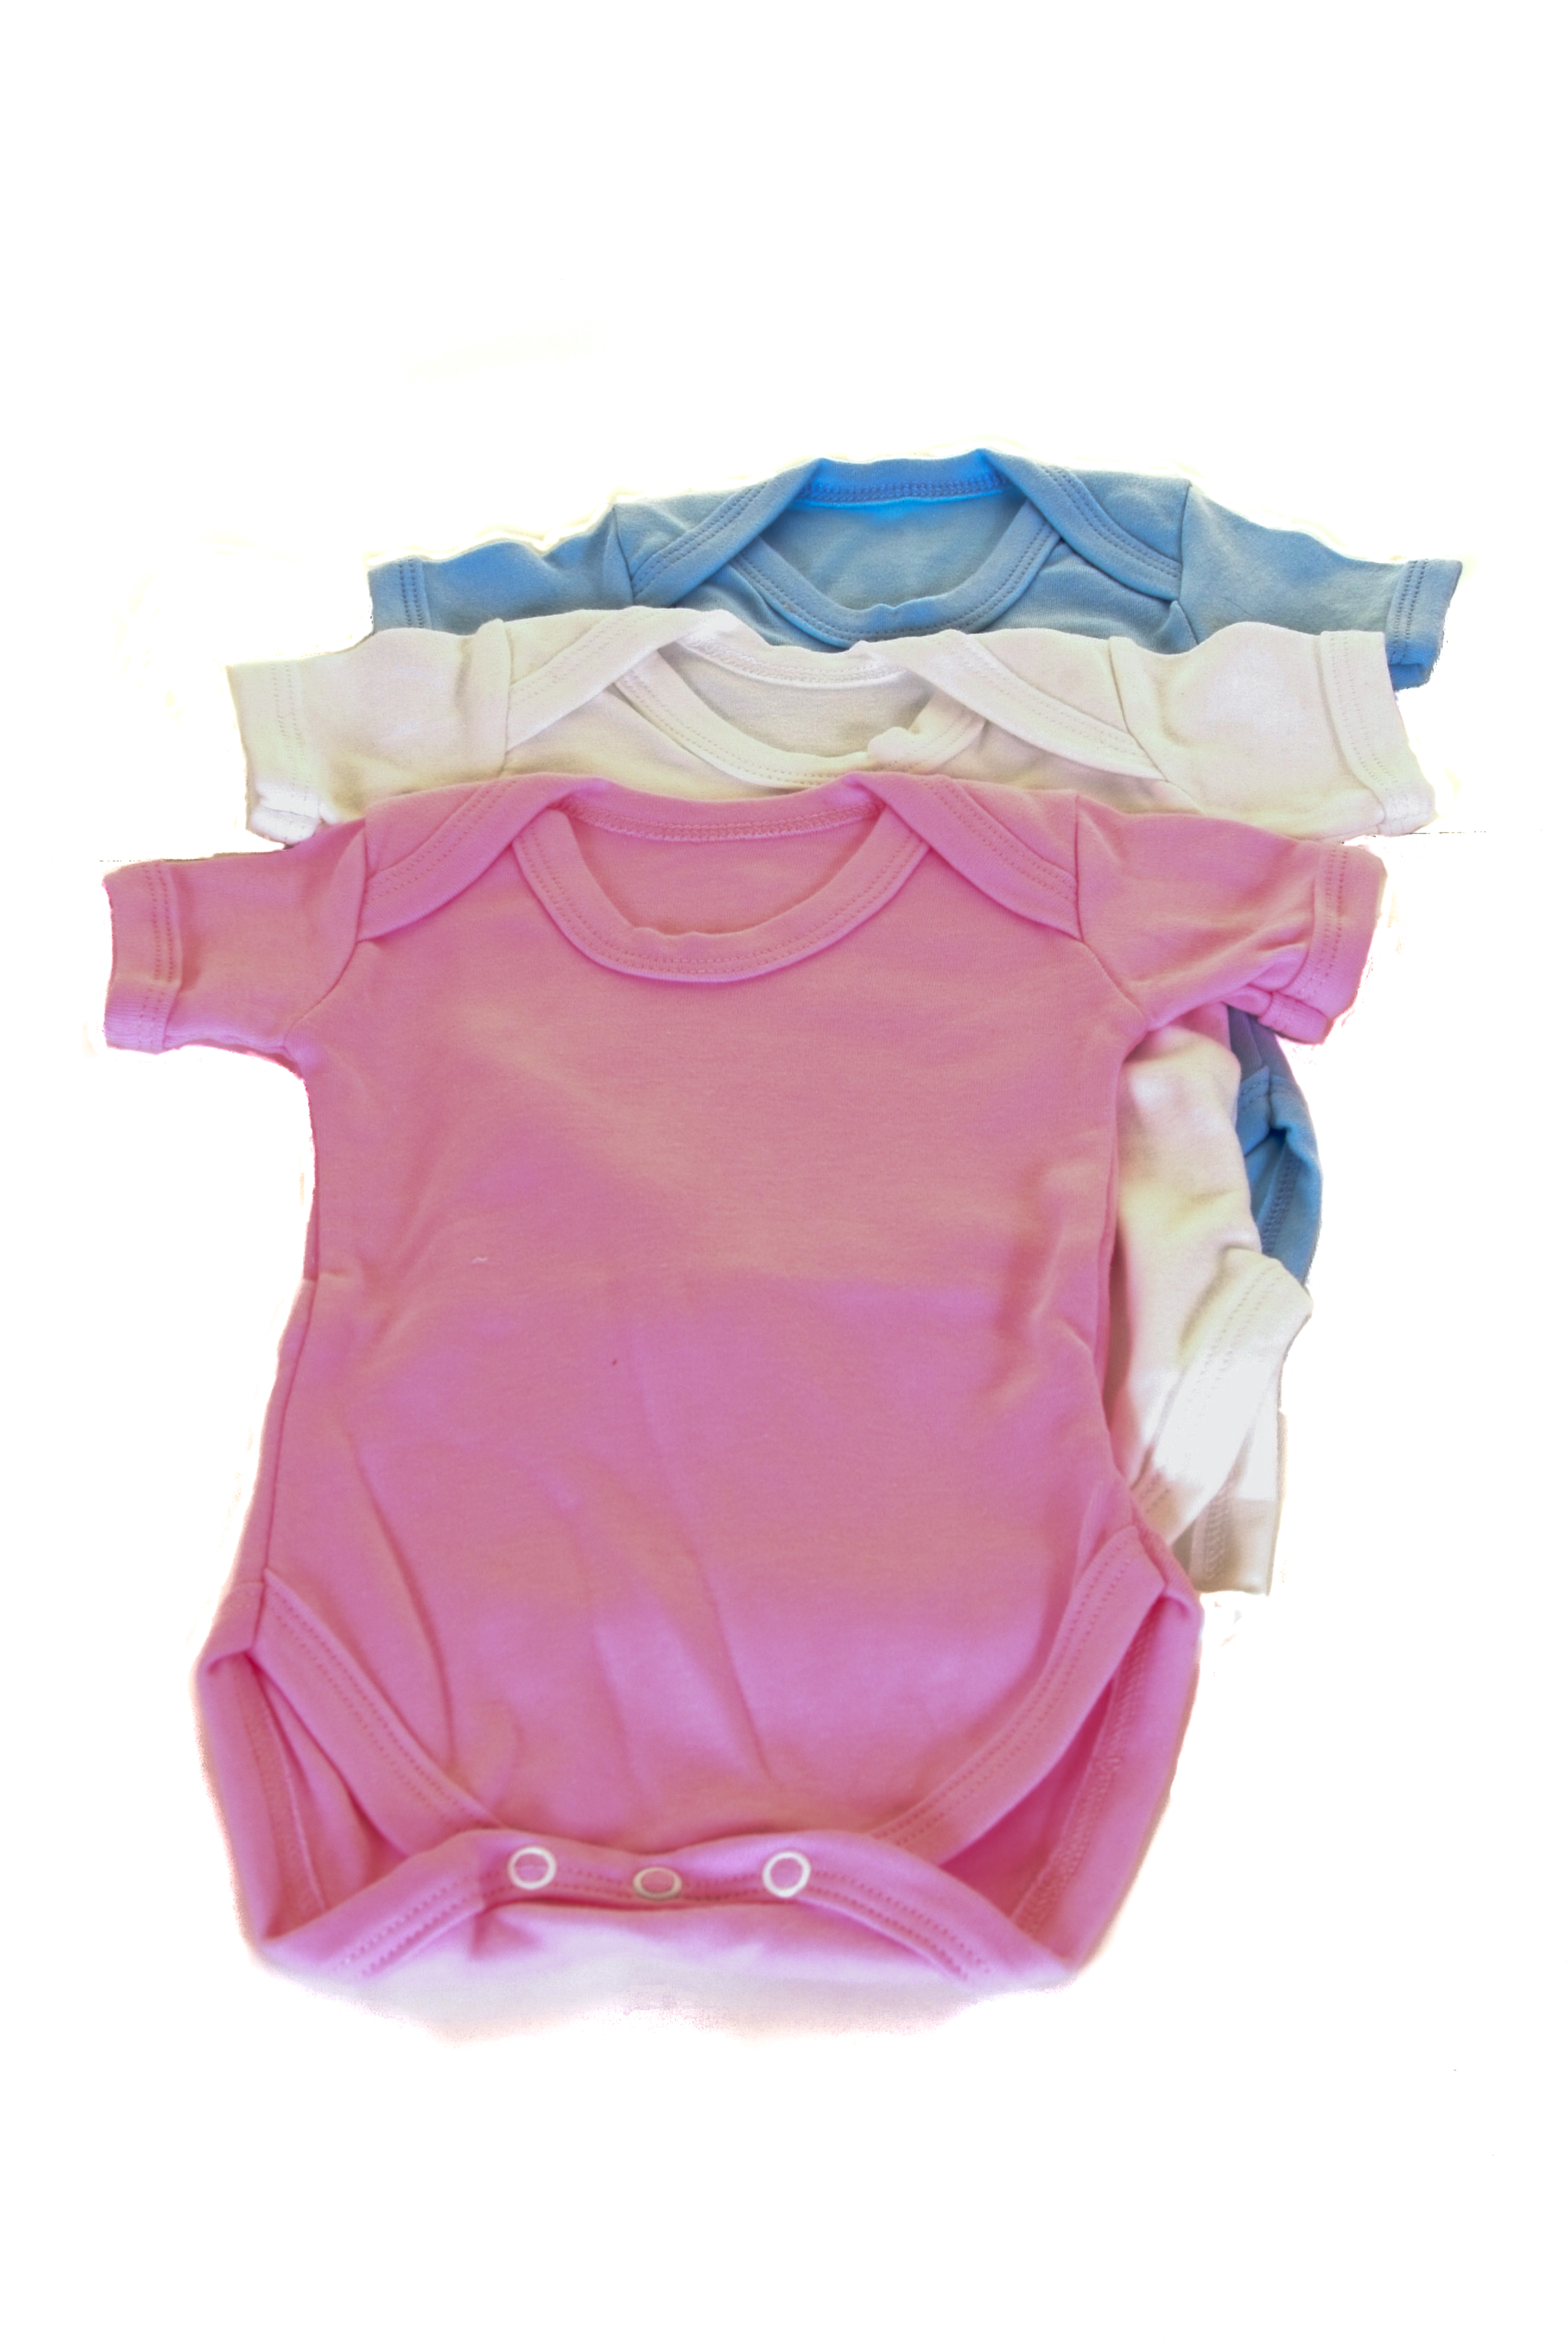 baby vests in baby gift box E